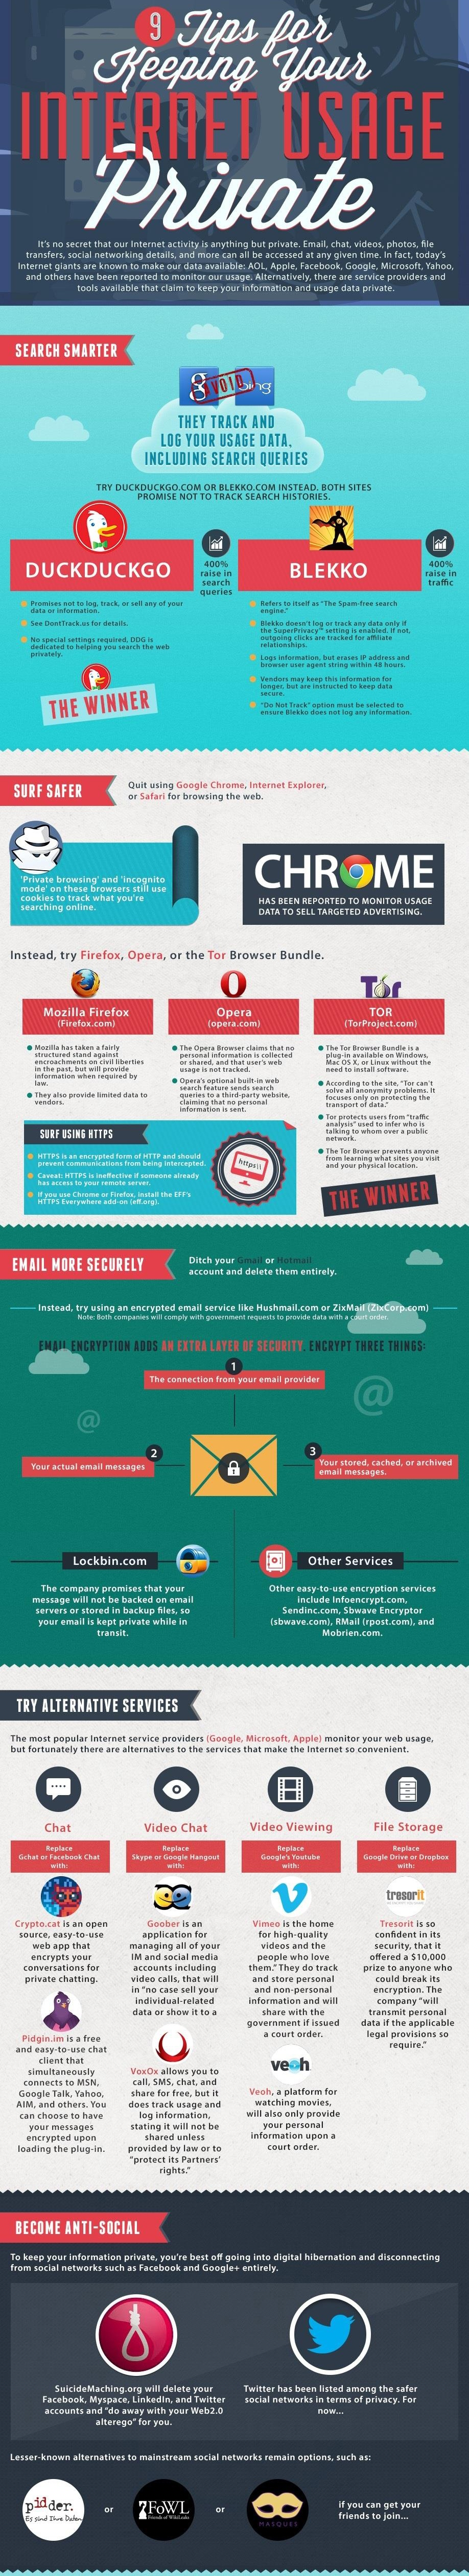 keep-internet-use-private-infographic1